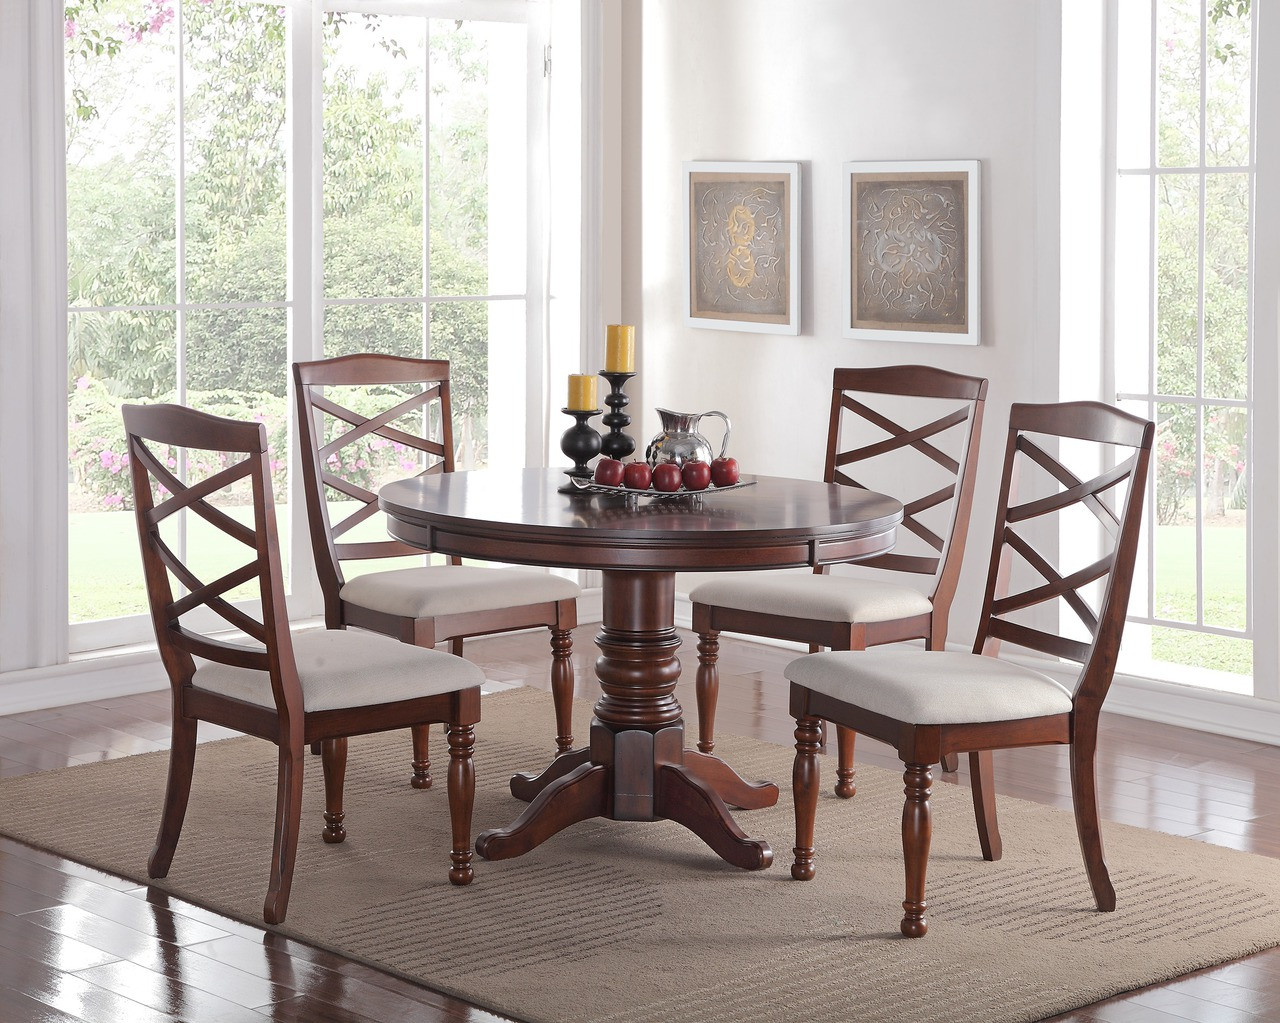 Easton 48 Dark Cherry Round Dining Room Table With Four Chairs